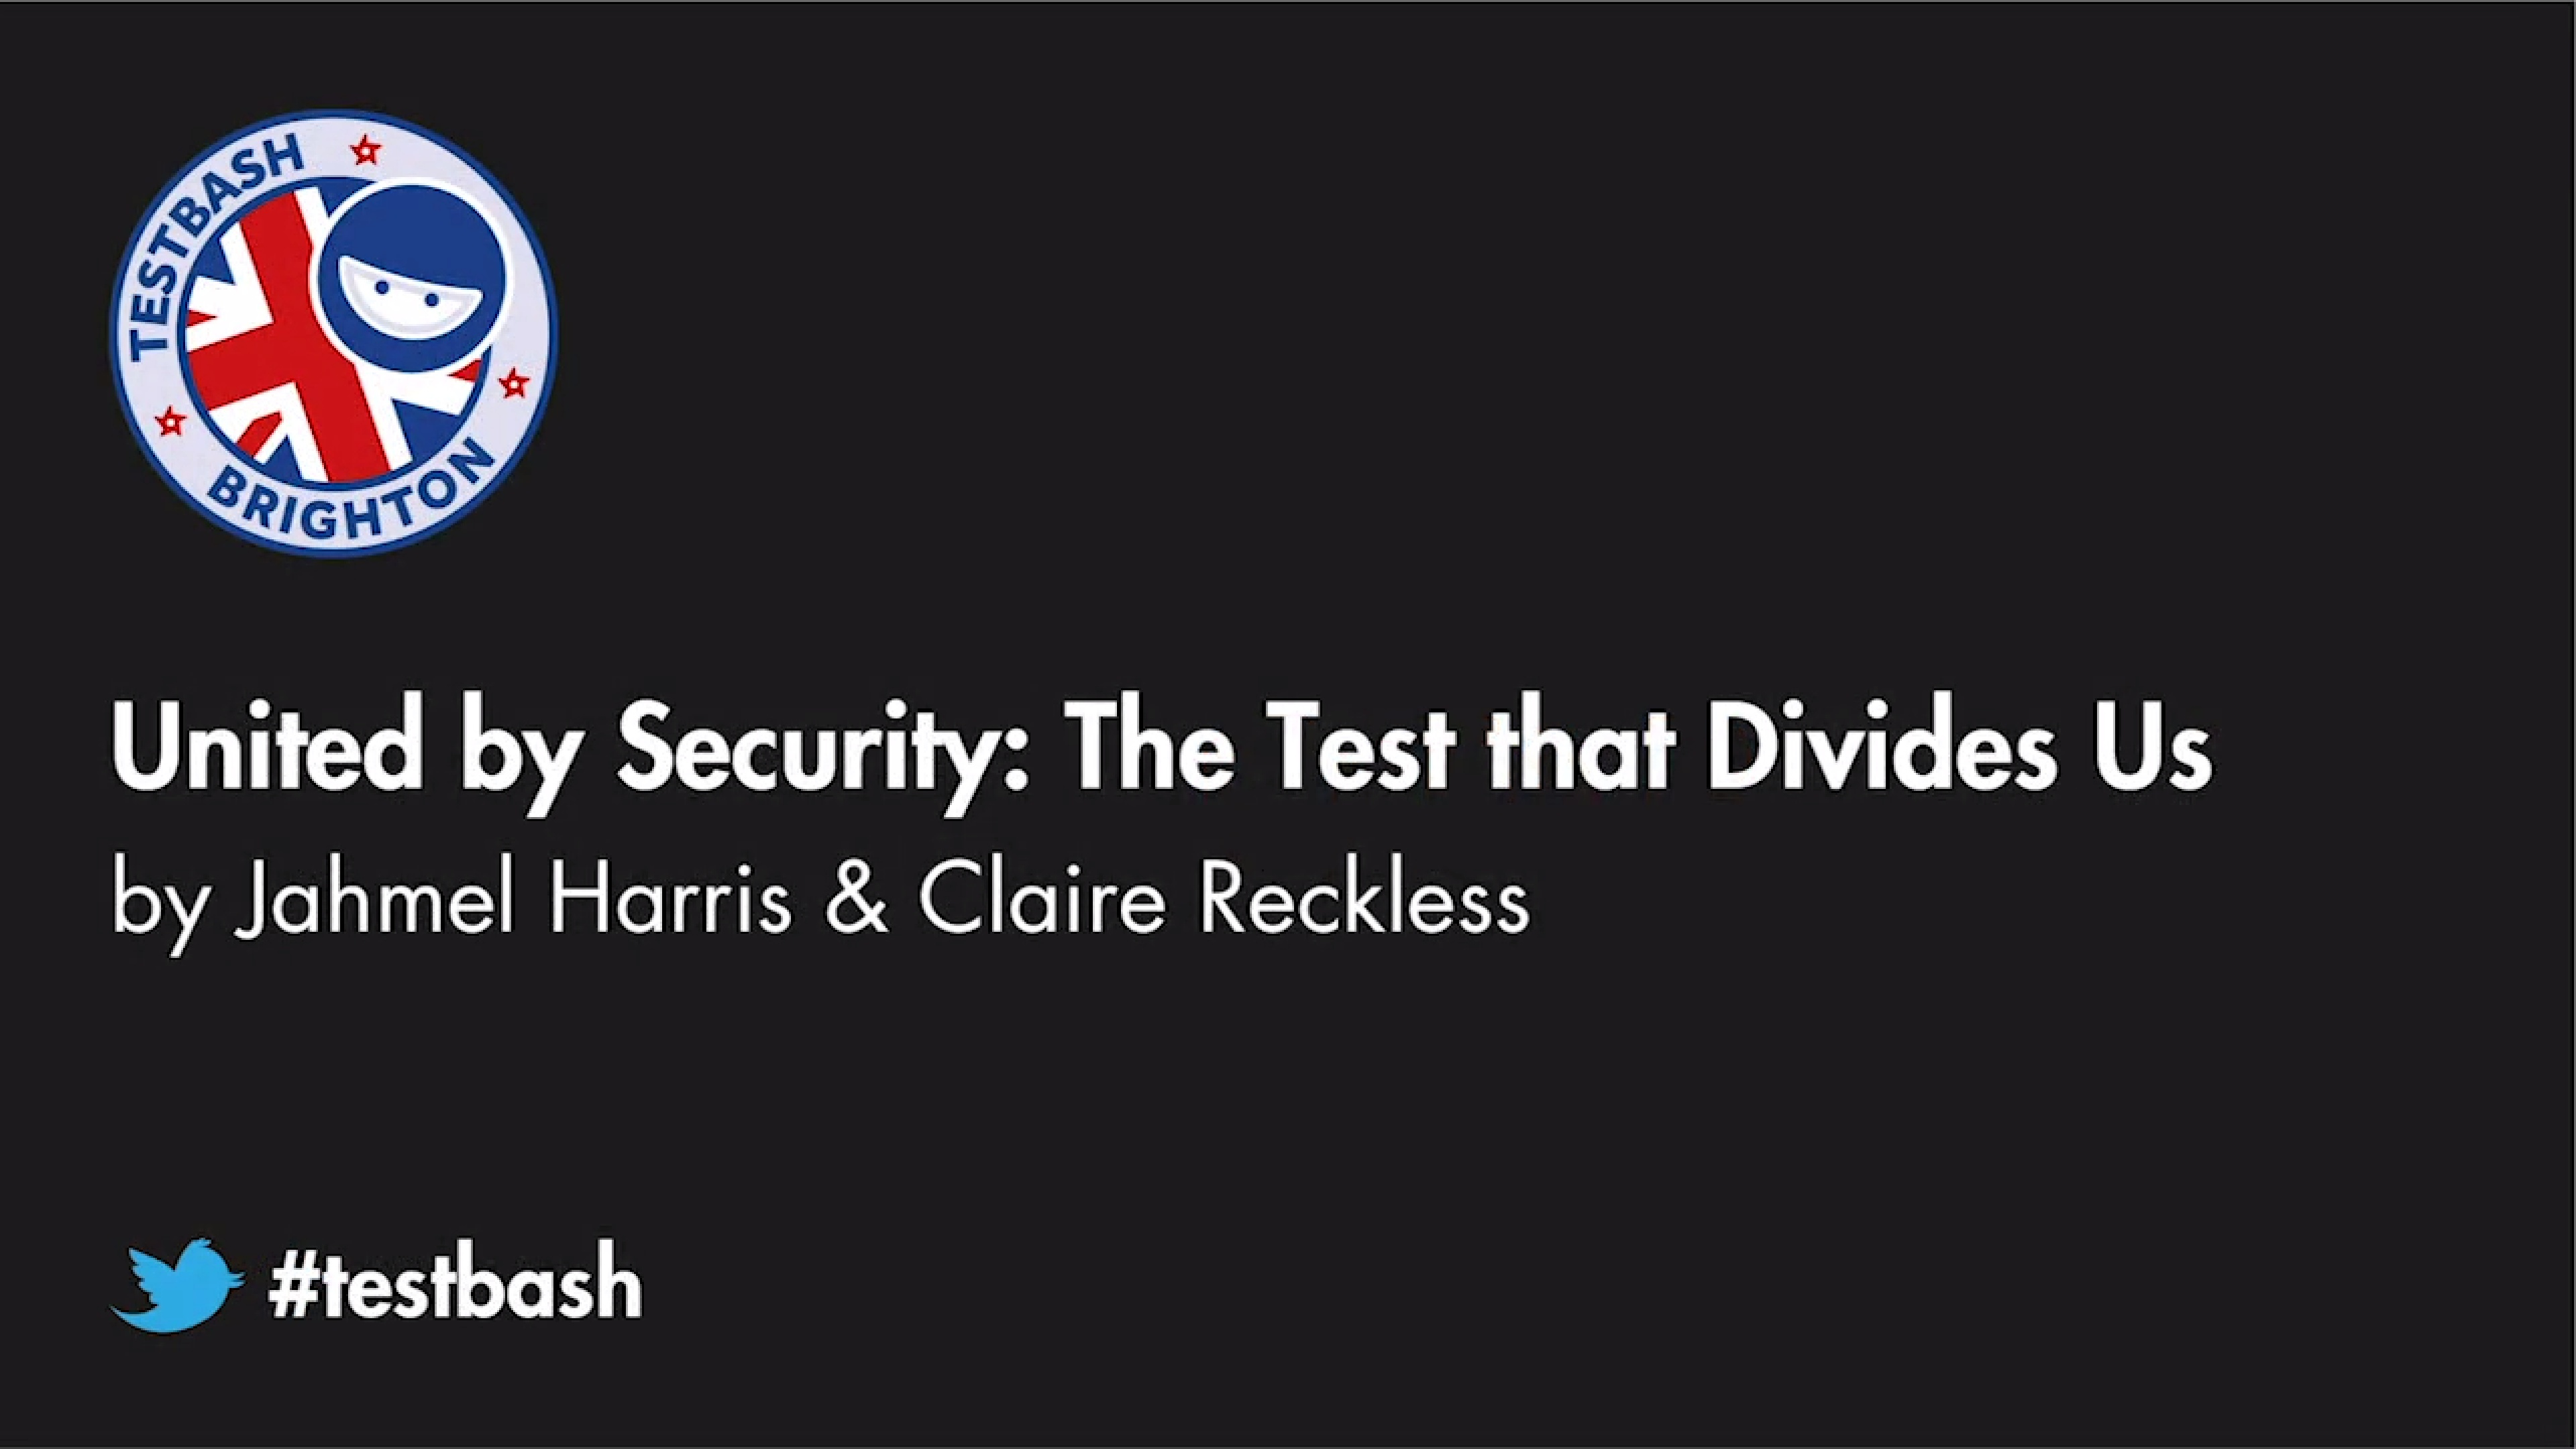 United by Security : The Test that Divides Us - Jahmel Harris & Claire Reckless